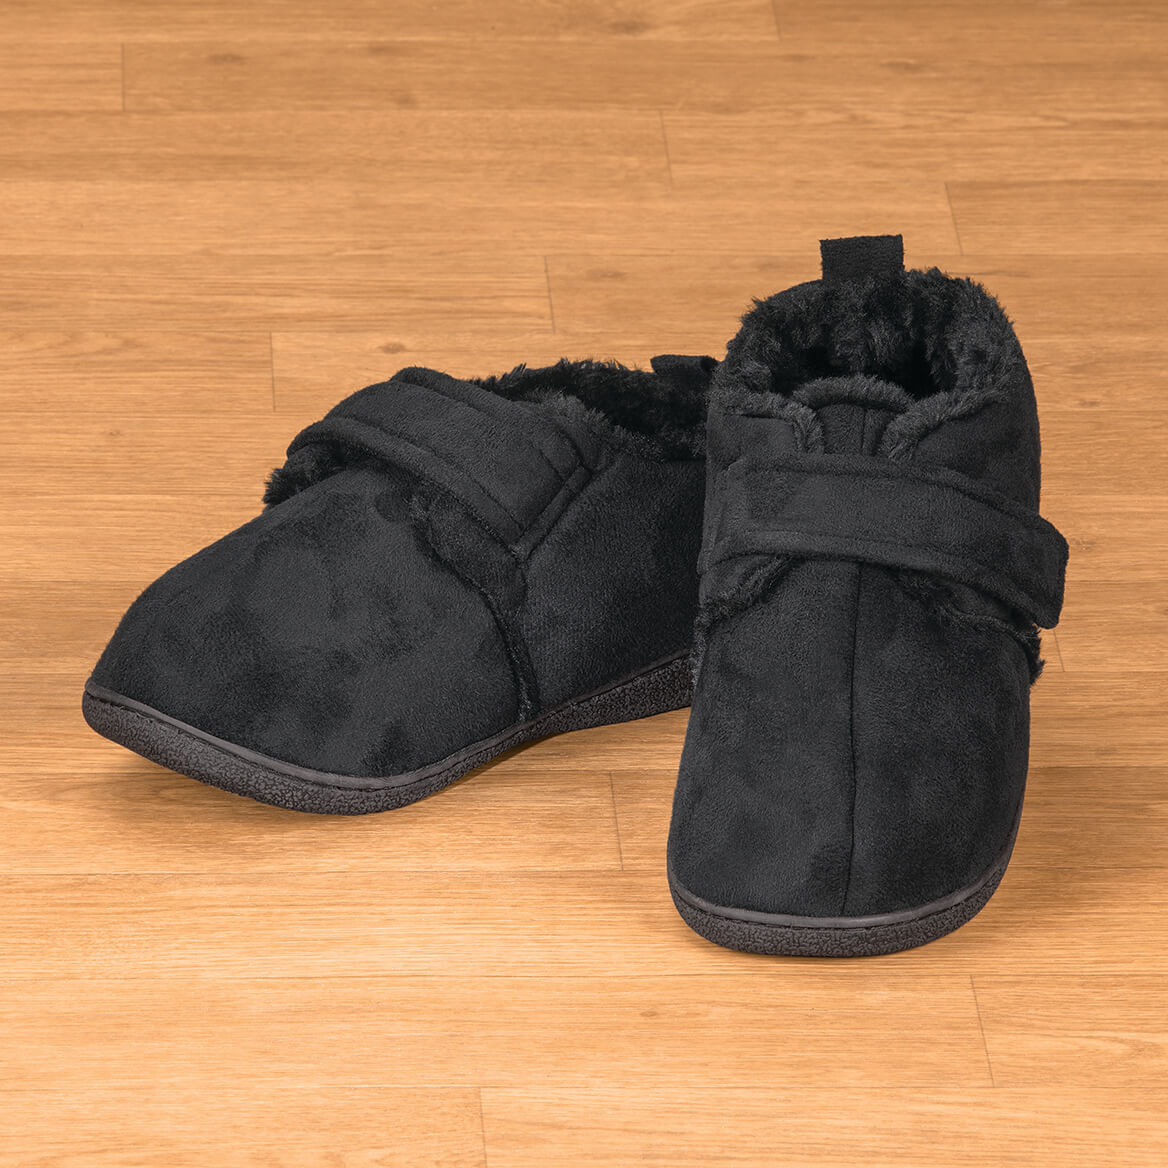 Diabetic Comfort Slippers Ladies-369905